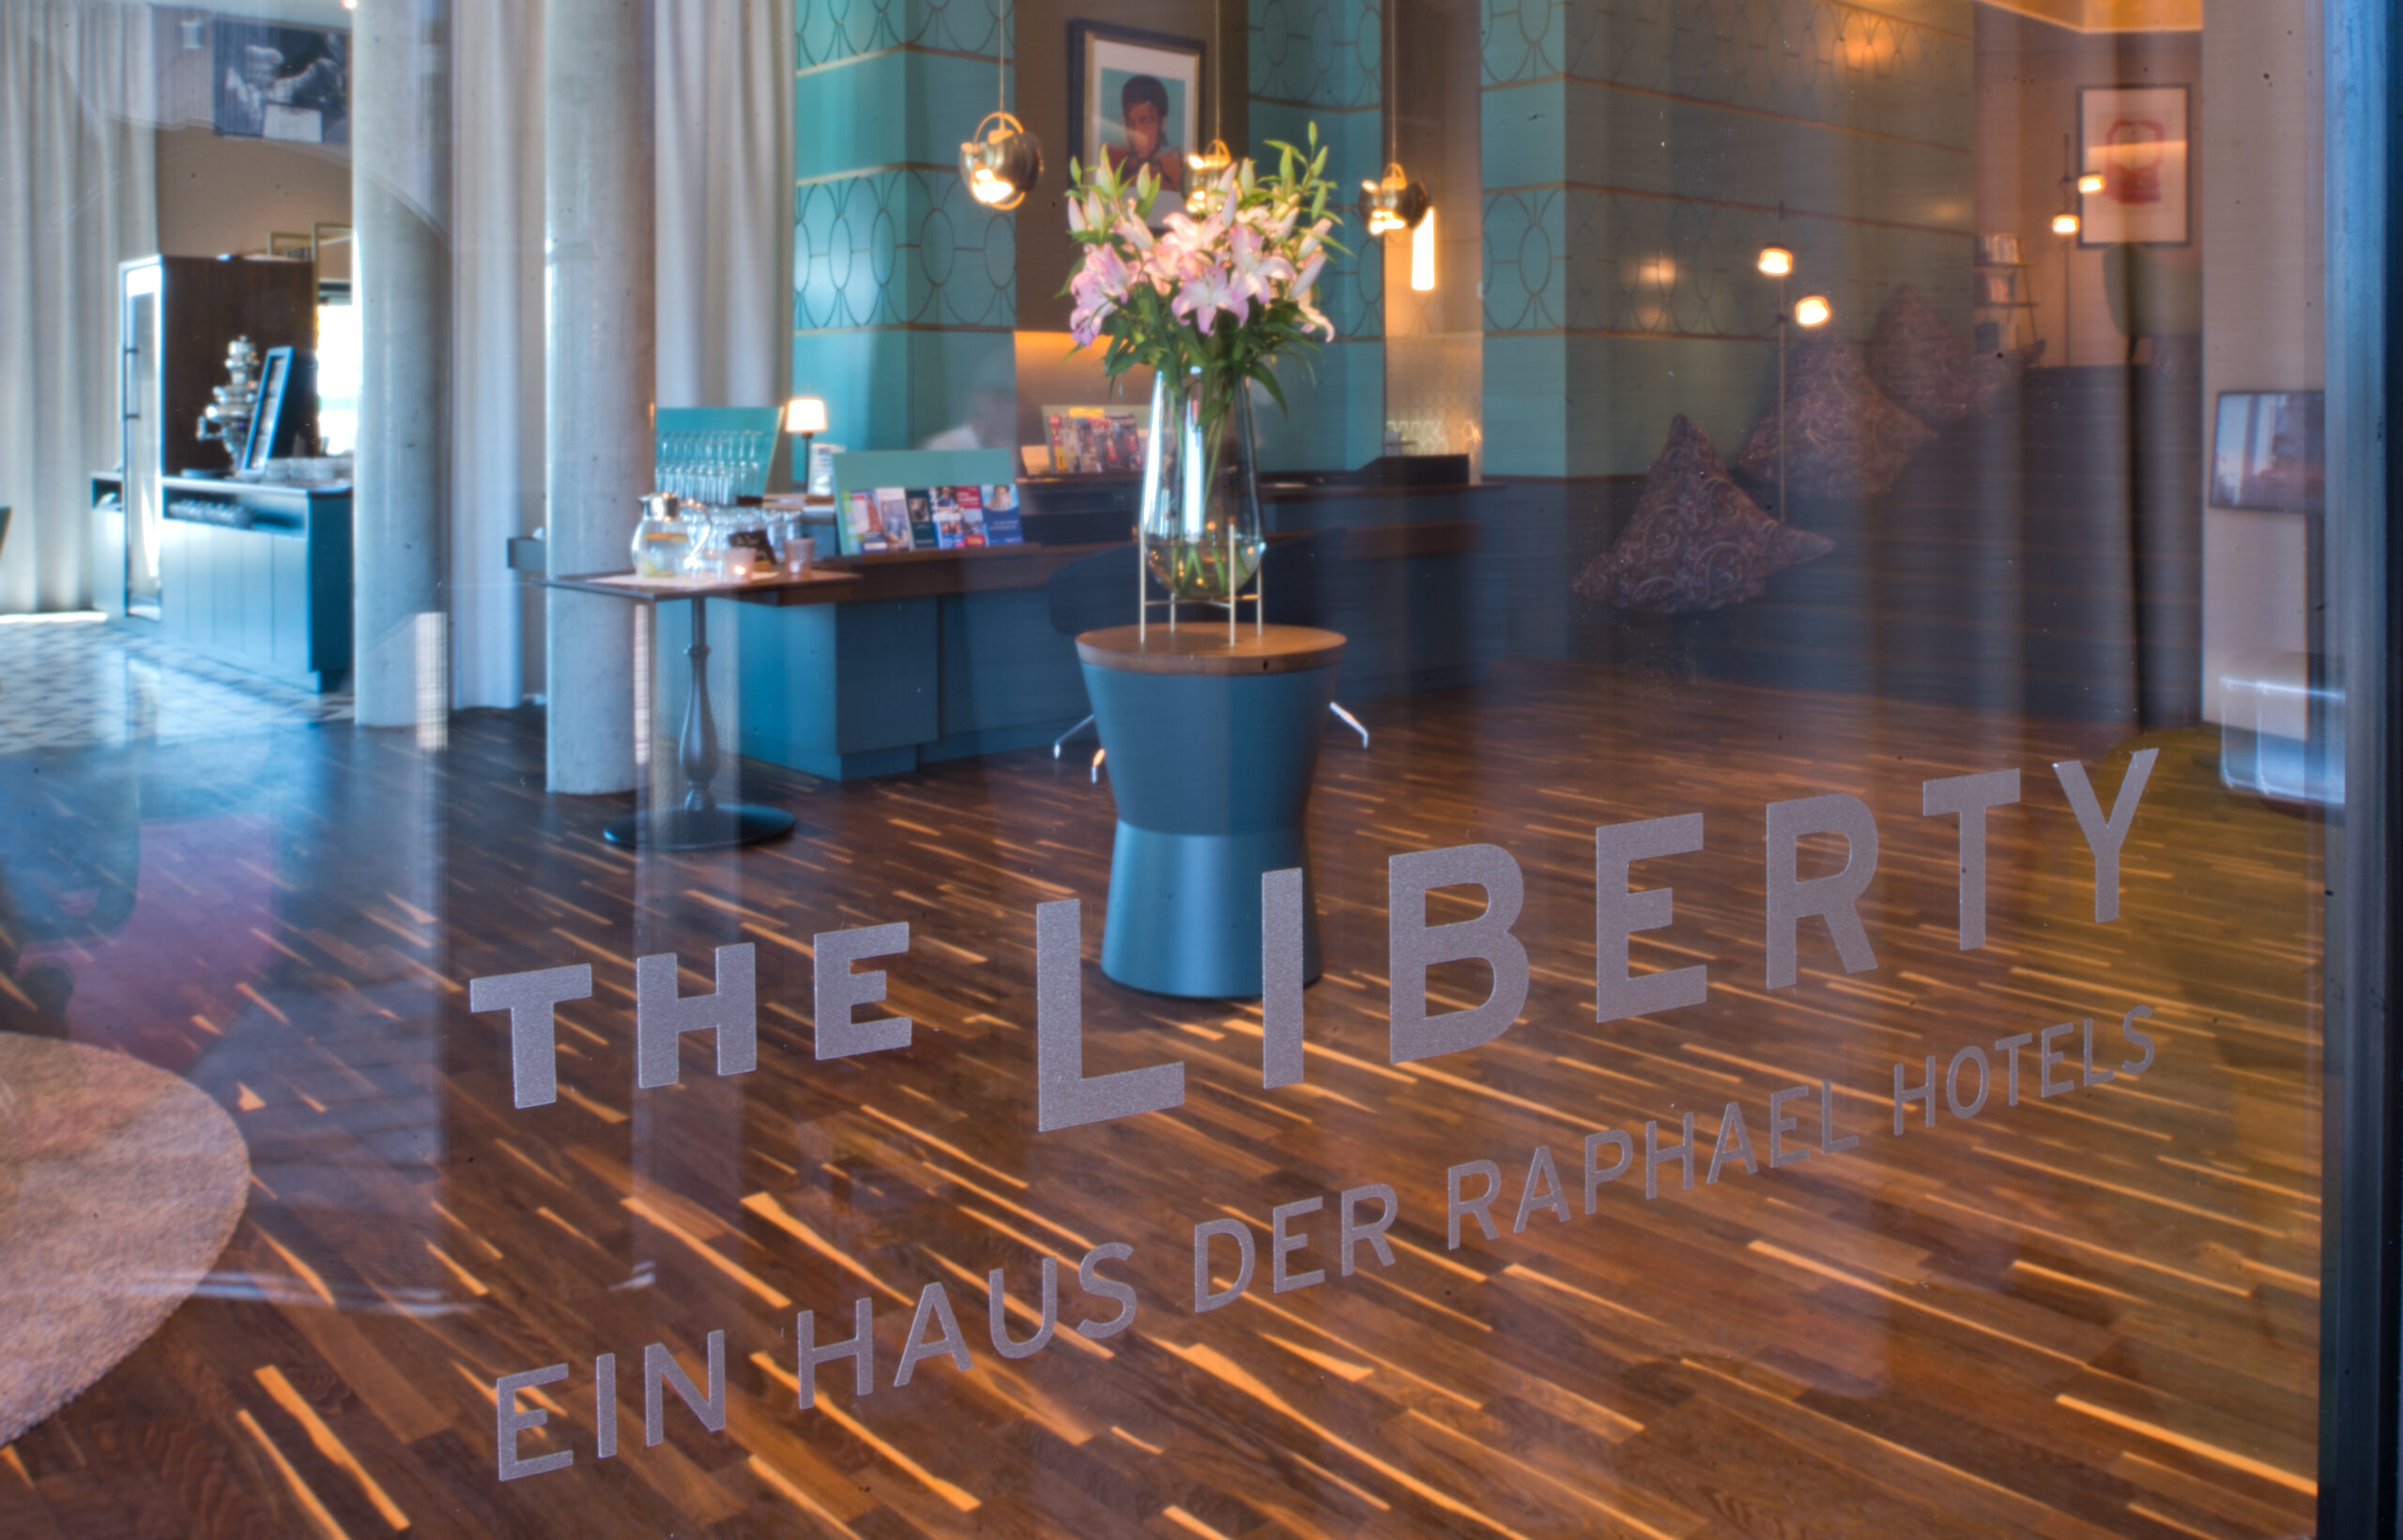 THE LIBERTY Hotel Bremerhaven